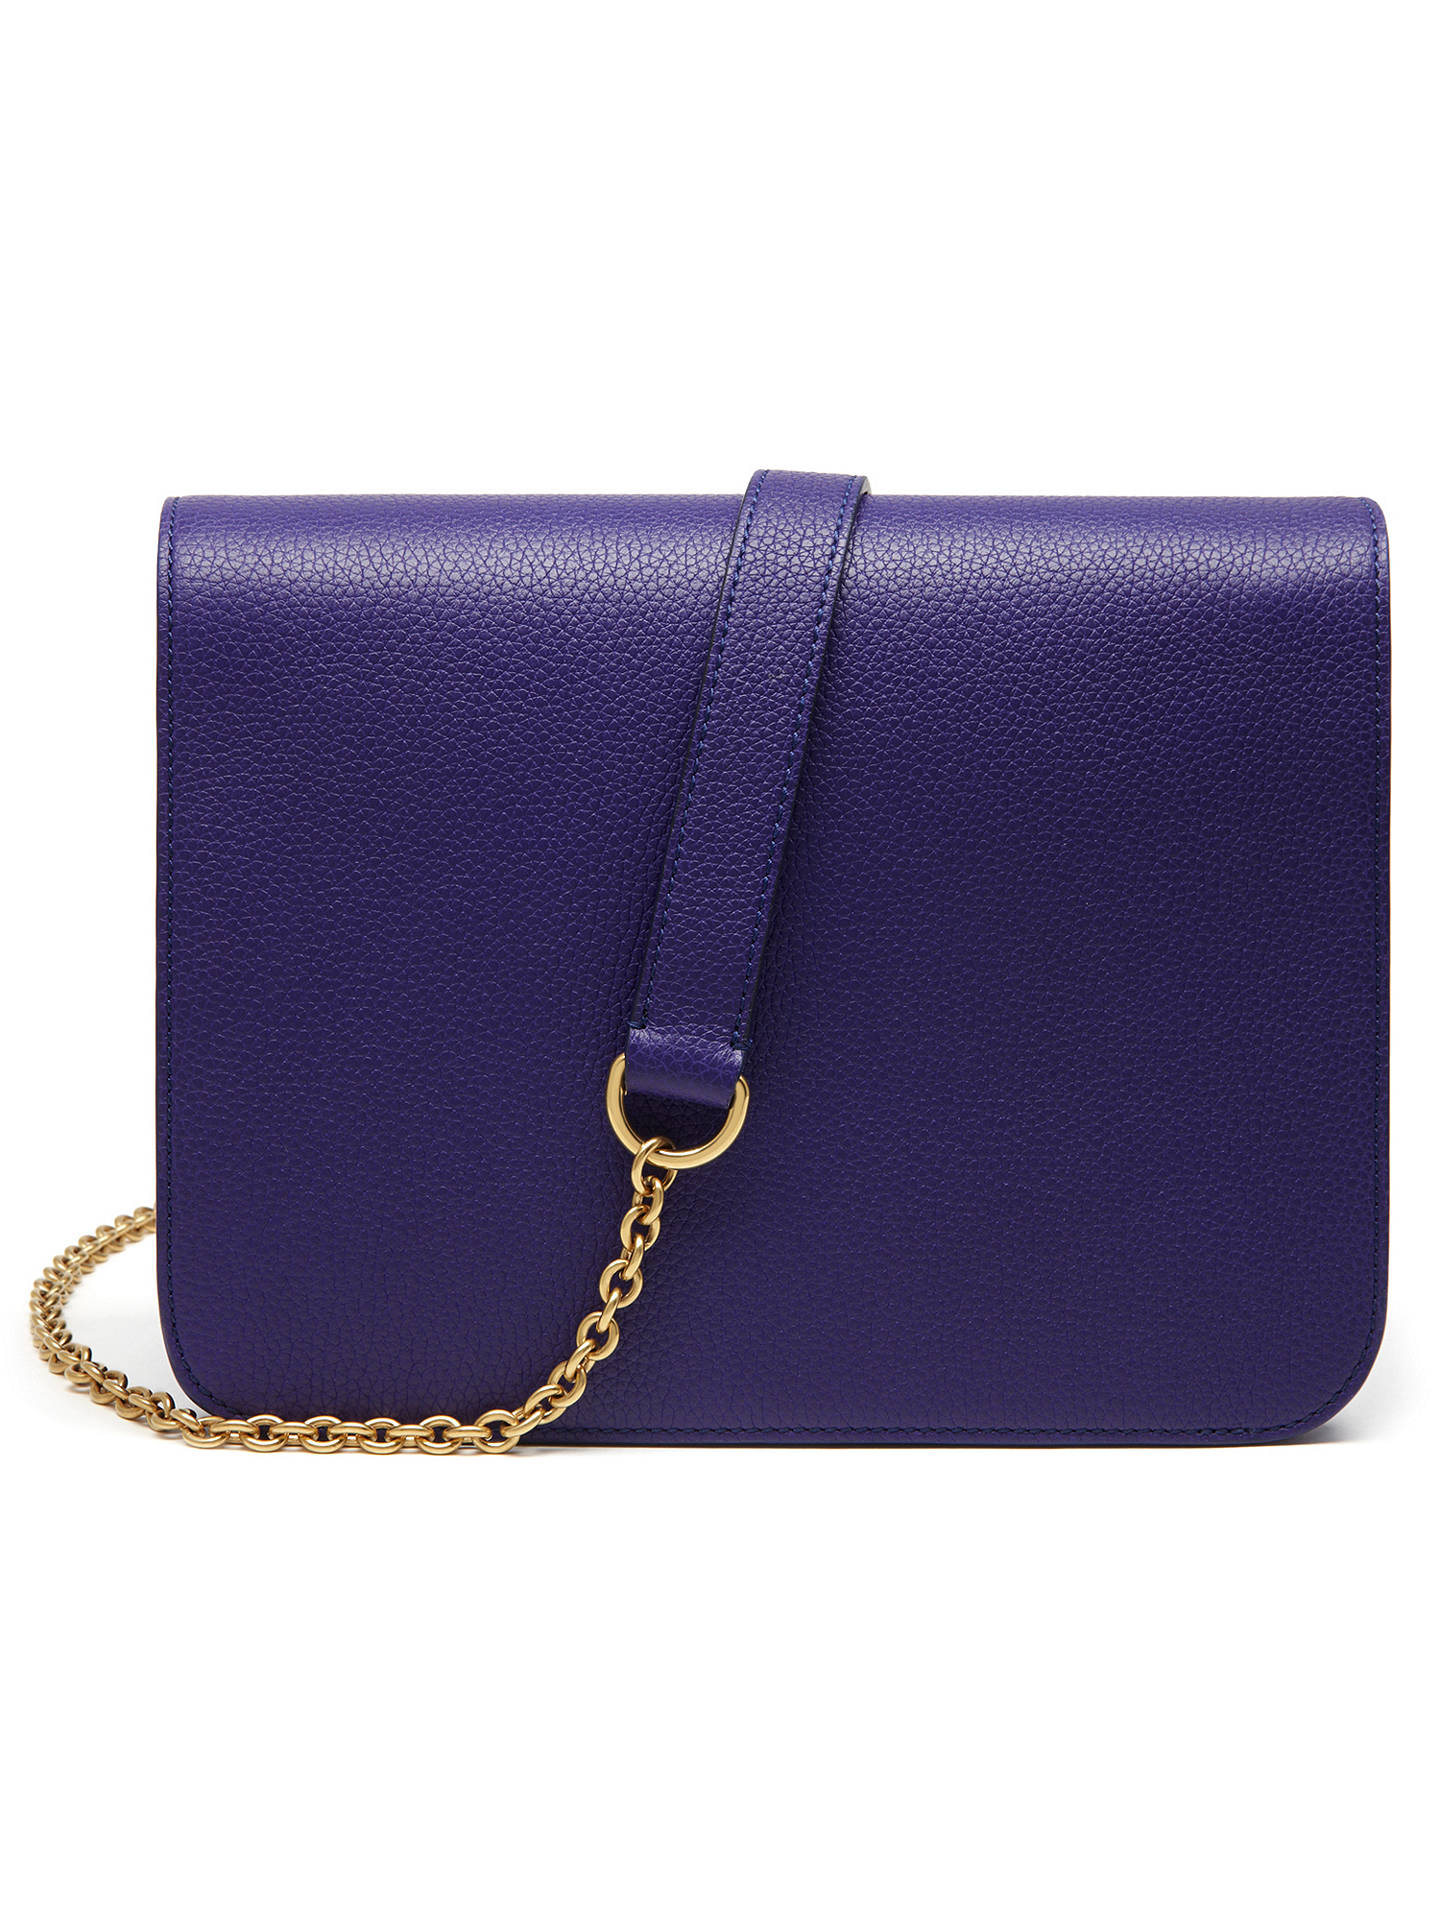 BuyMulberry Clifton Classic Grain Leather Across Body Bag, Indigo Online at johnlewis.com